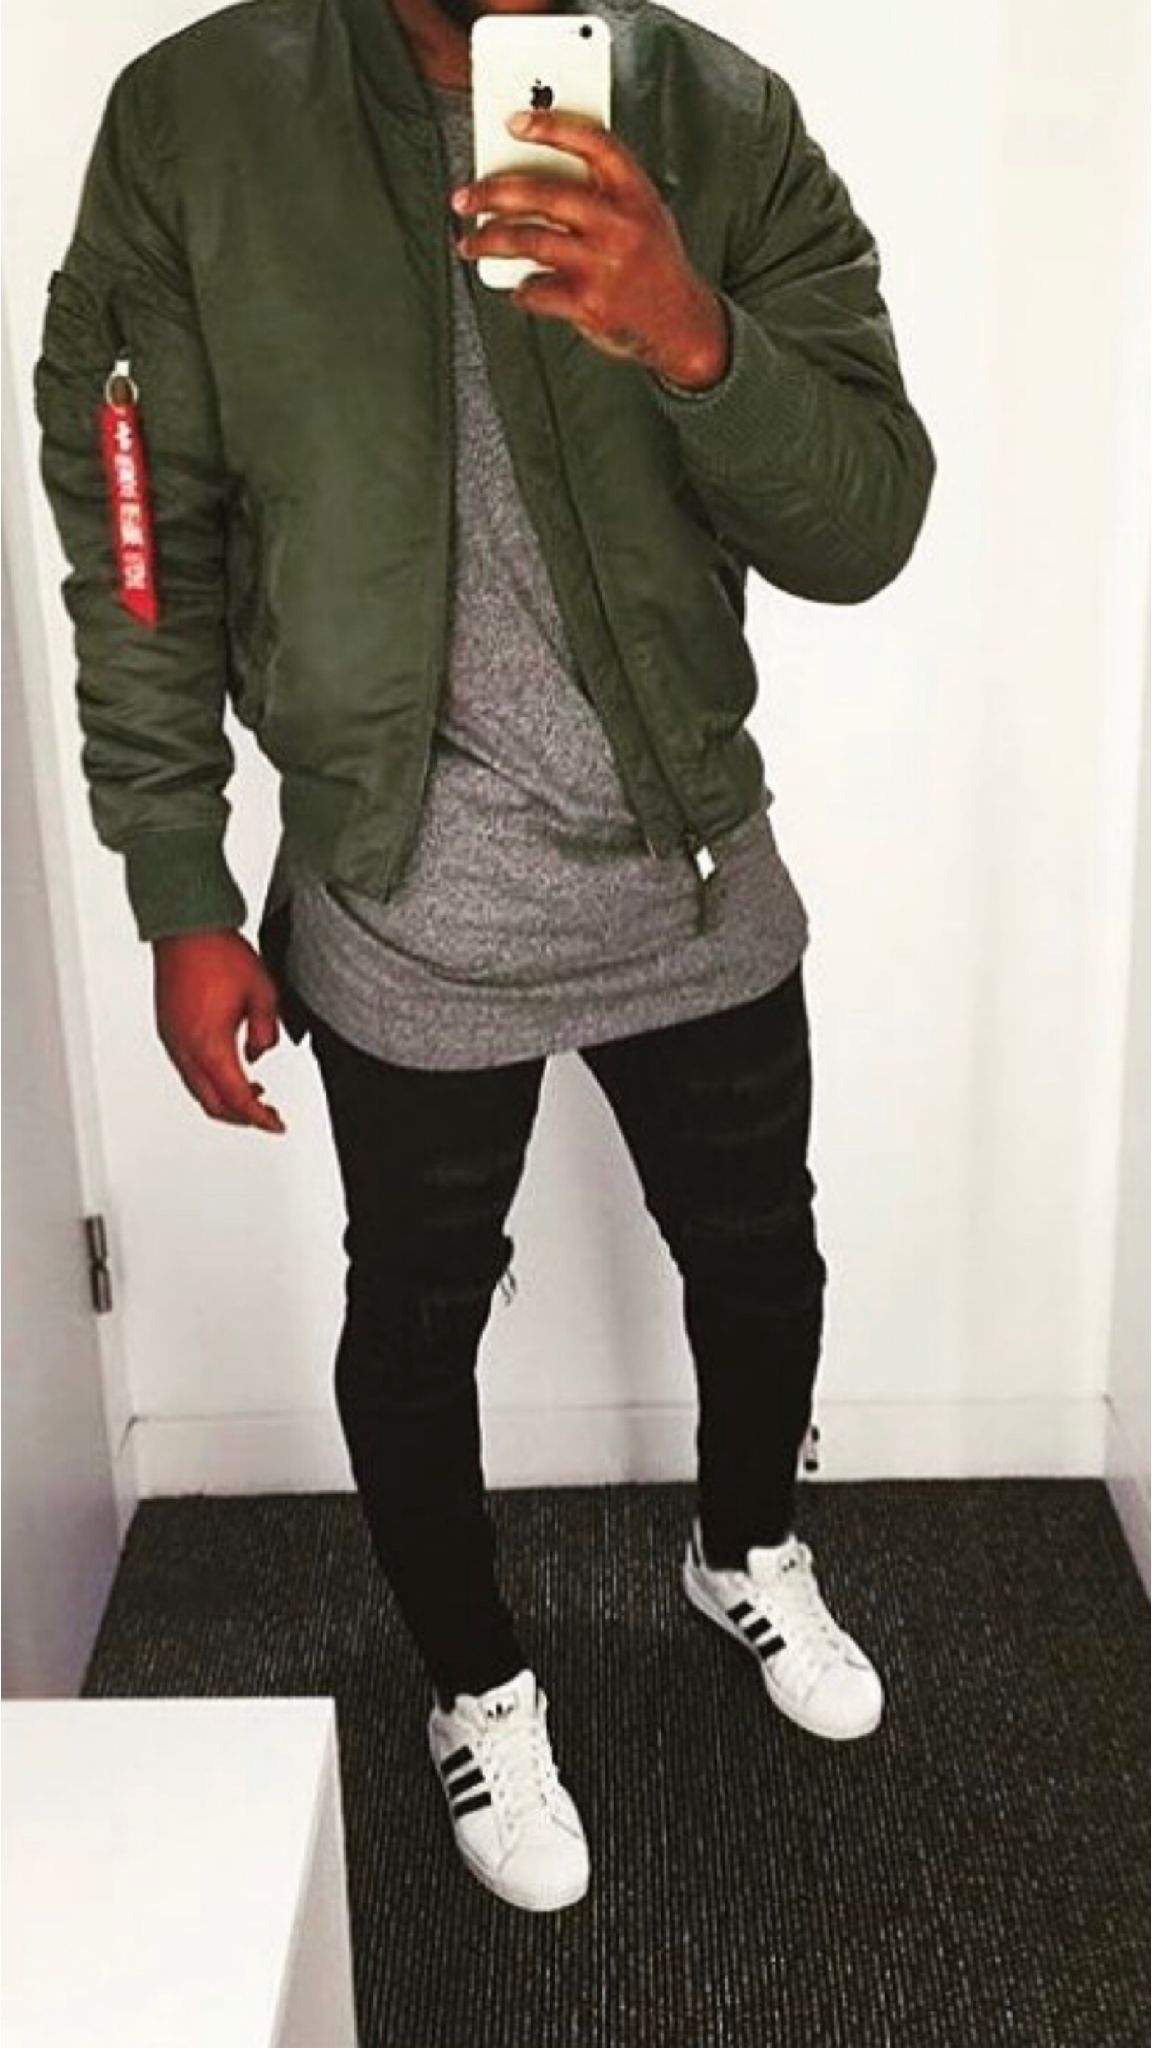 19 Really Cool Jacket Outfits Green Bomber Jacket Men Stylish Mens Outfits Green Bomber Jacket Outfit [ 2048 x 1152 Pixel ]